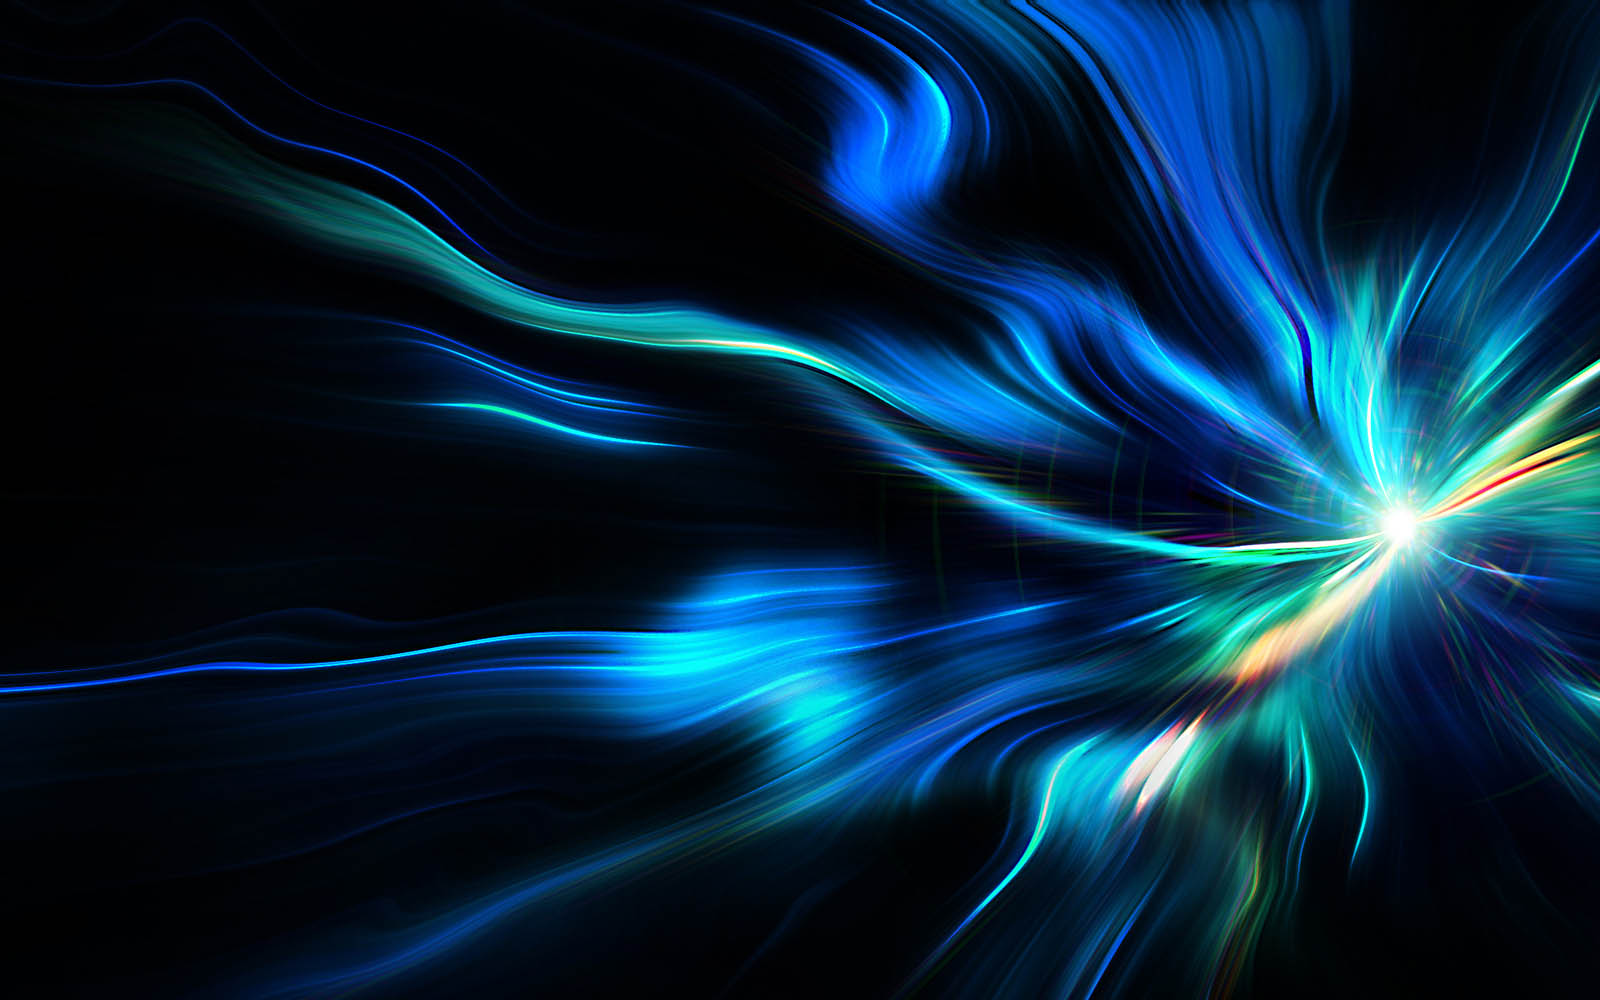 77+] 3d Background Pictures on WallpaperSafari